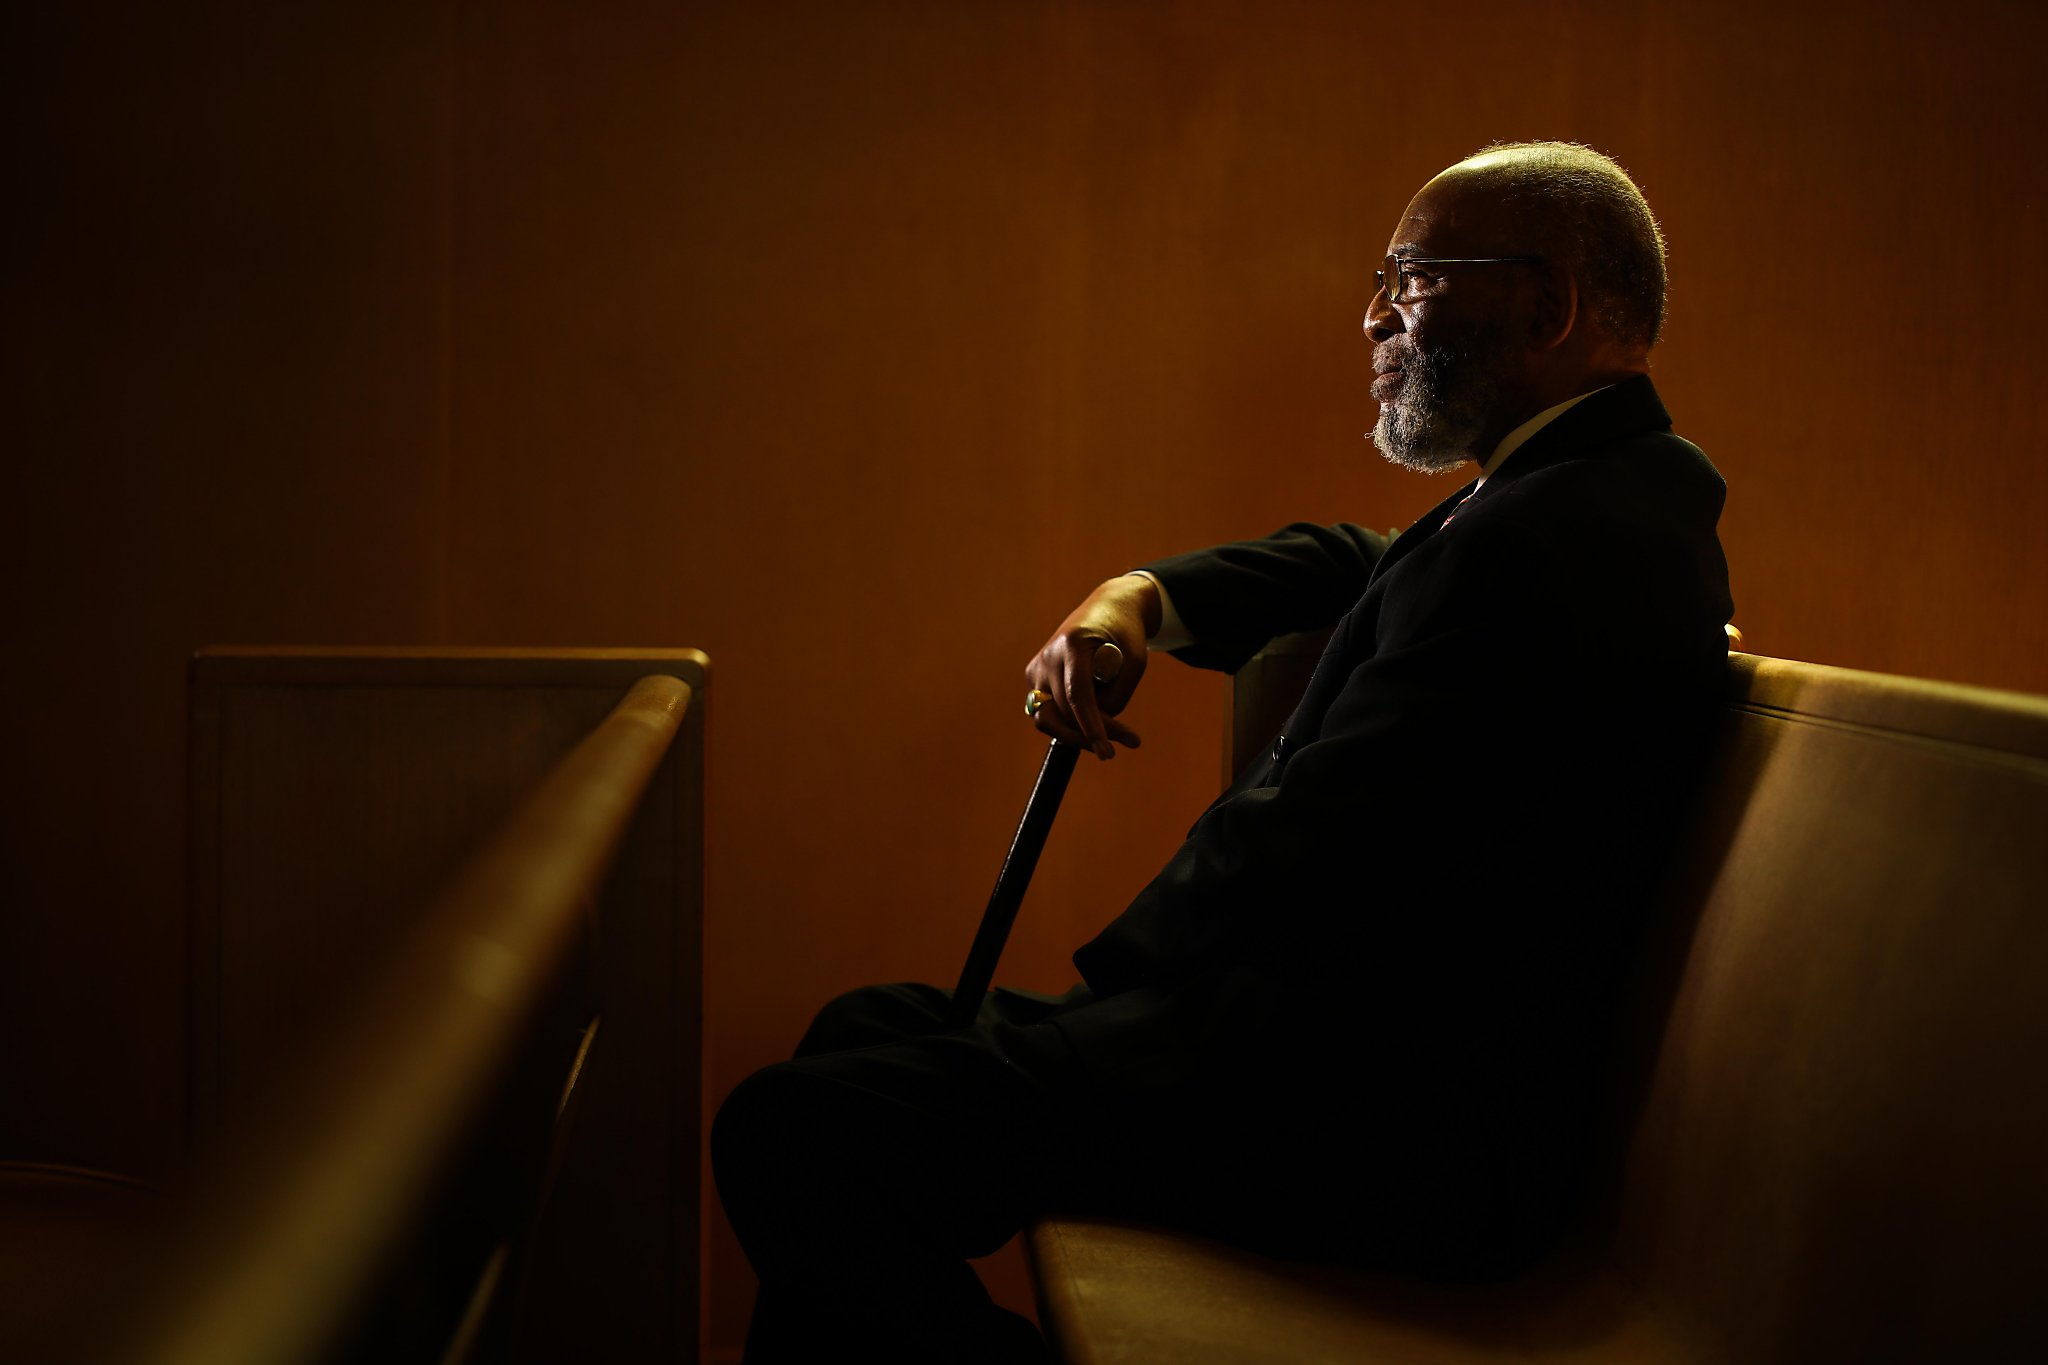 He studied under MLK and fought segregation. Rev. Amos Brown says: 'San Francisco has been living a lie'